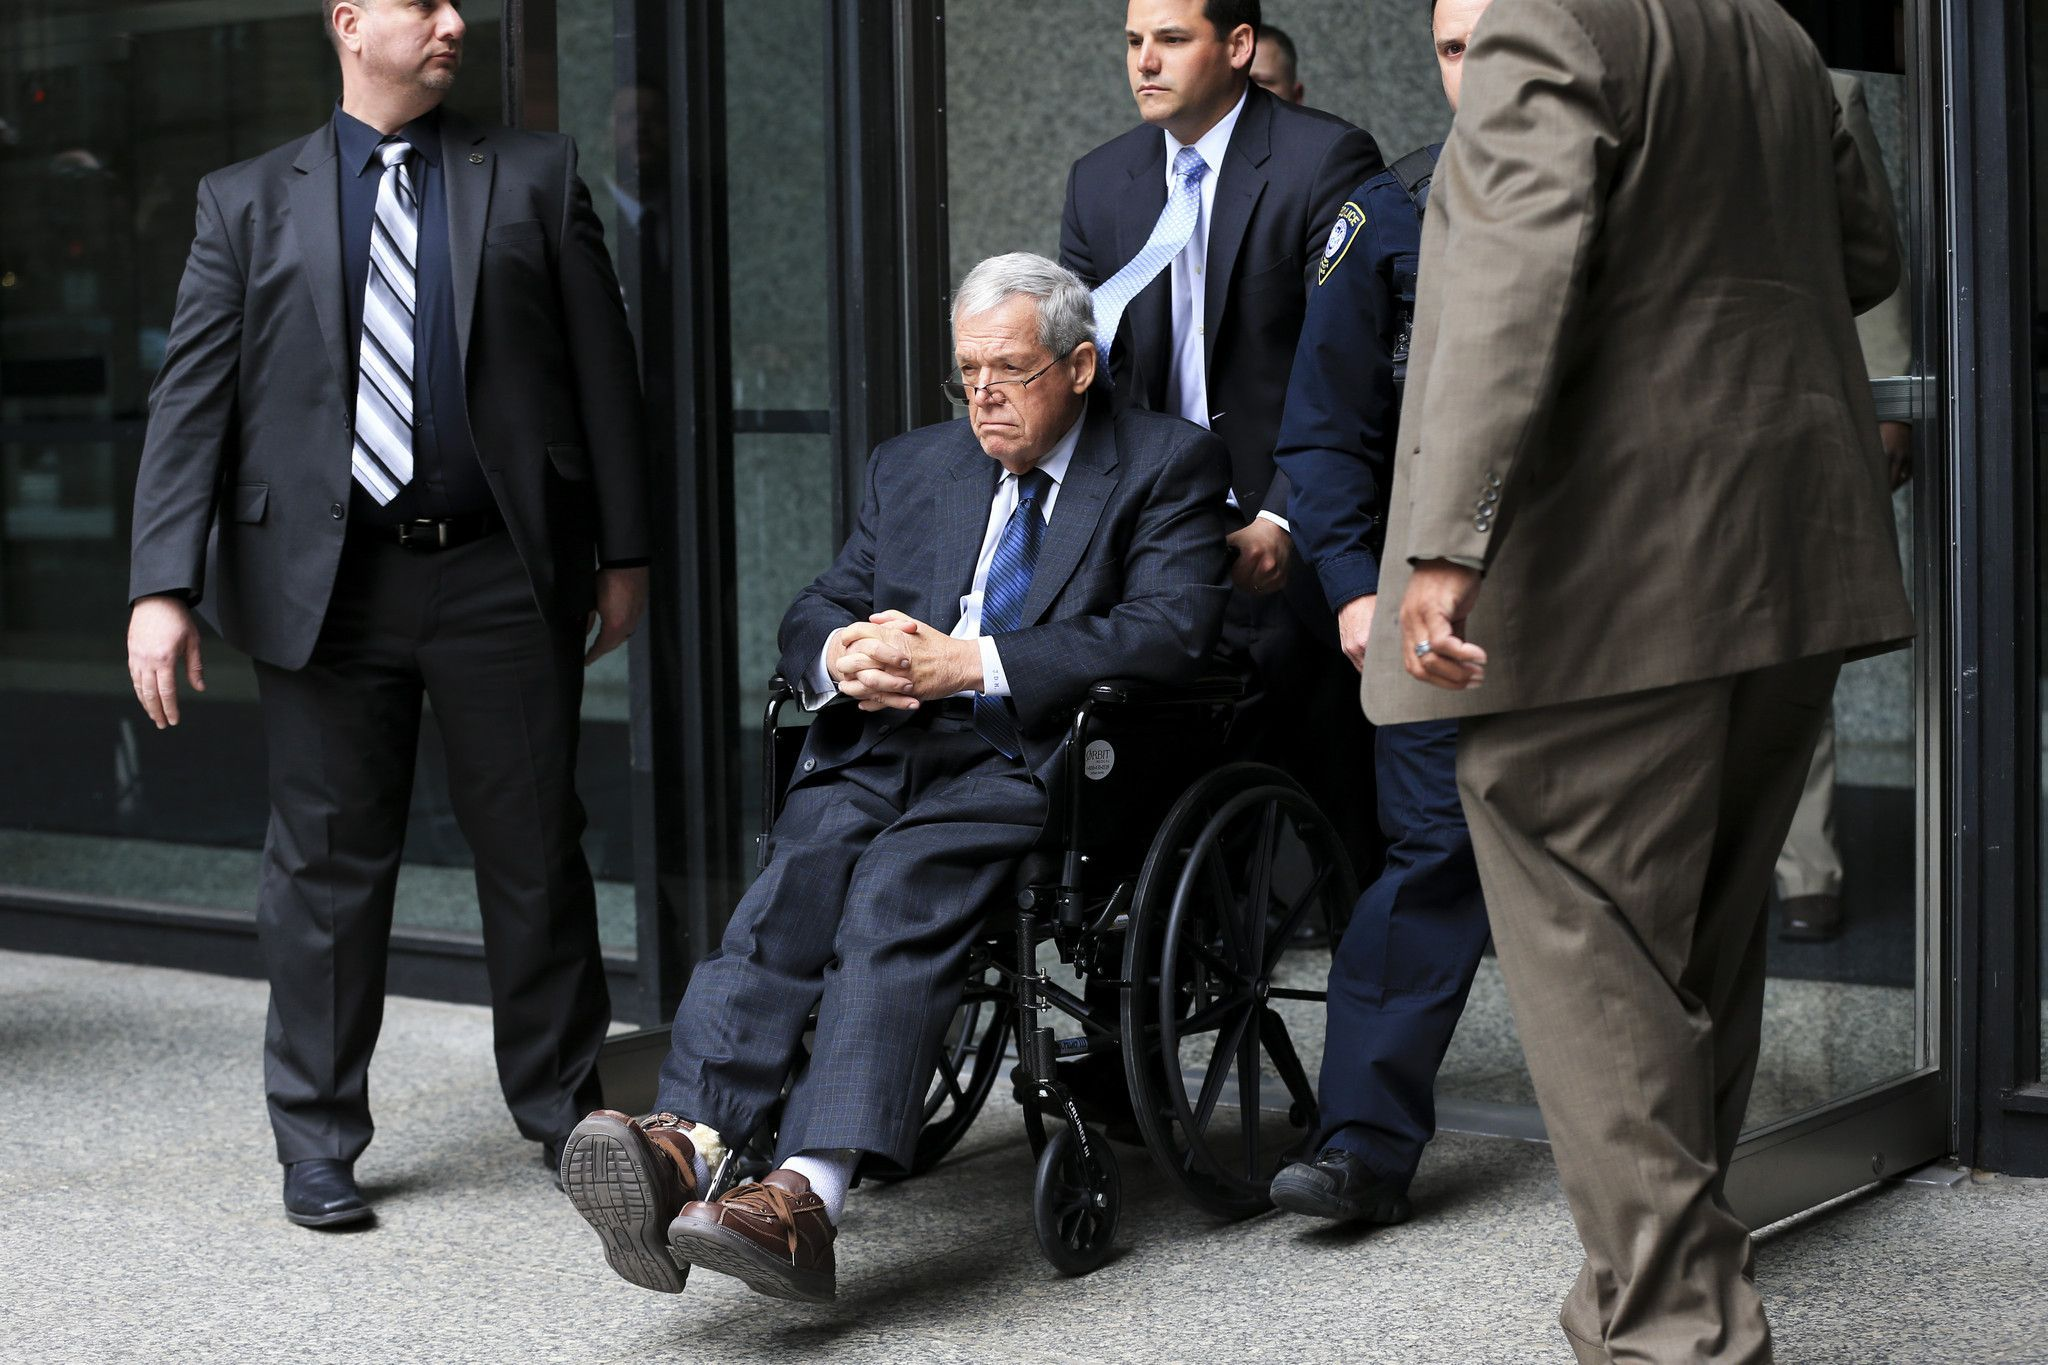 Dennis Hastert learns his fate today: prison or probation - Chicago Tribune